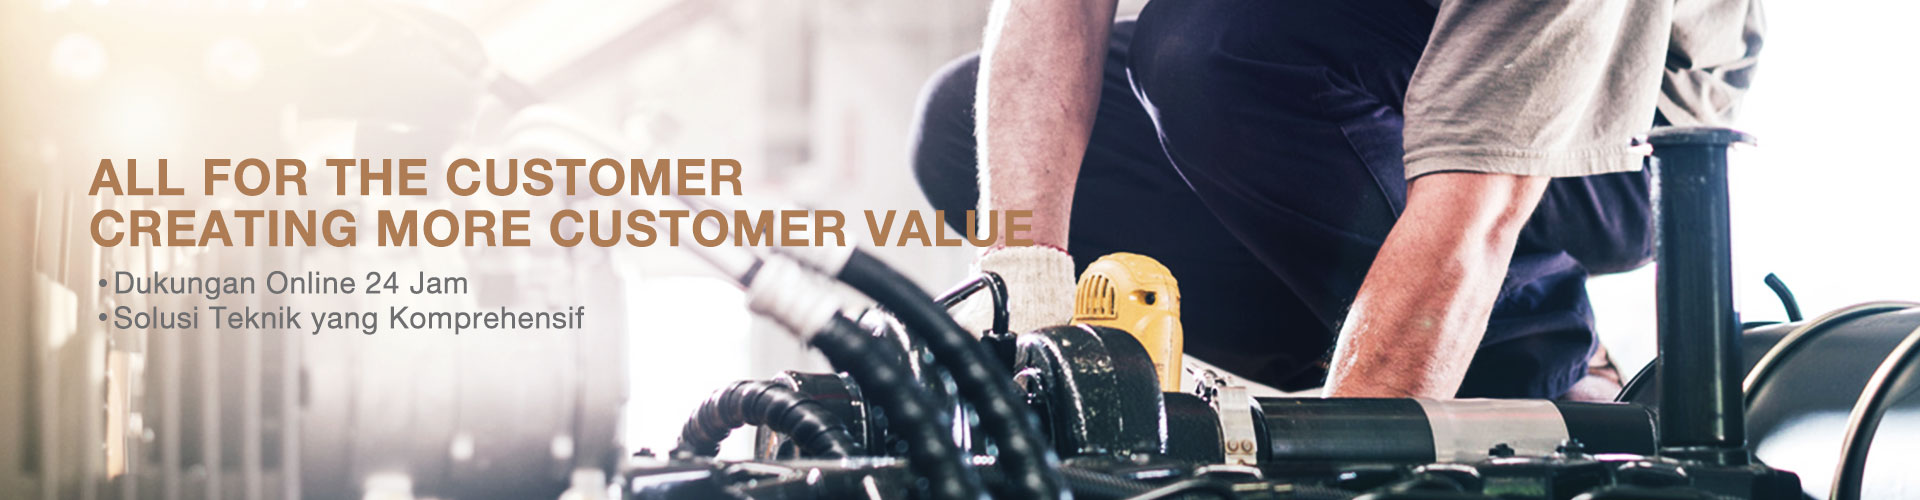 All for the customer, creating more customer value